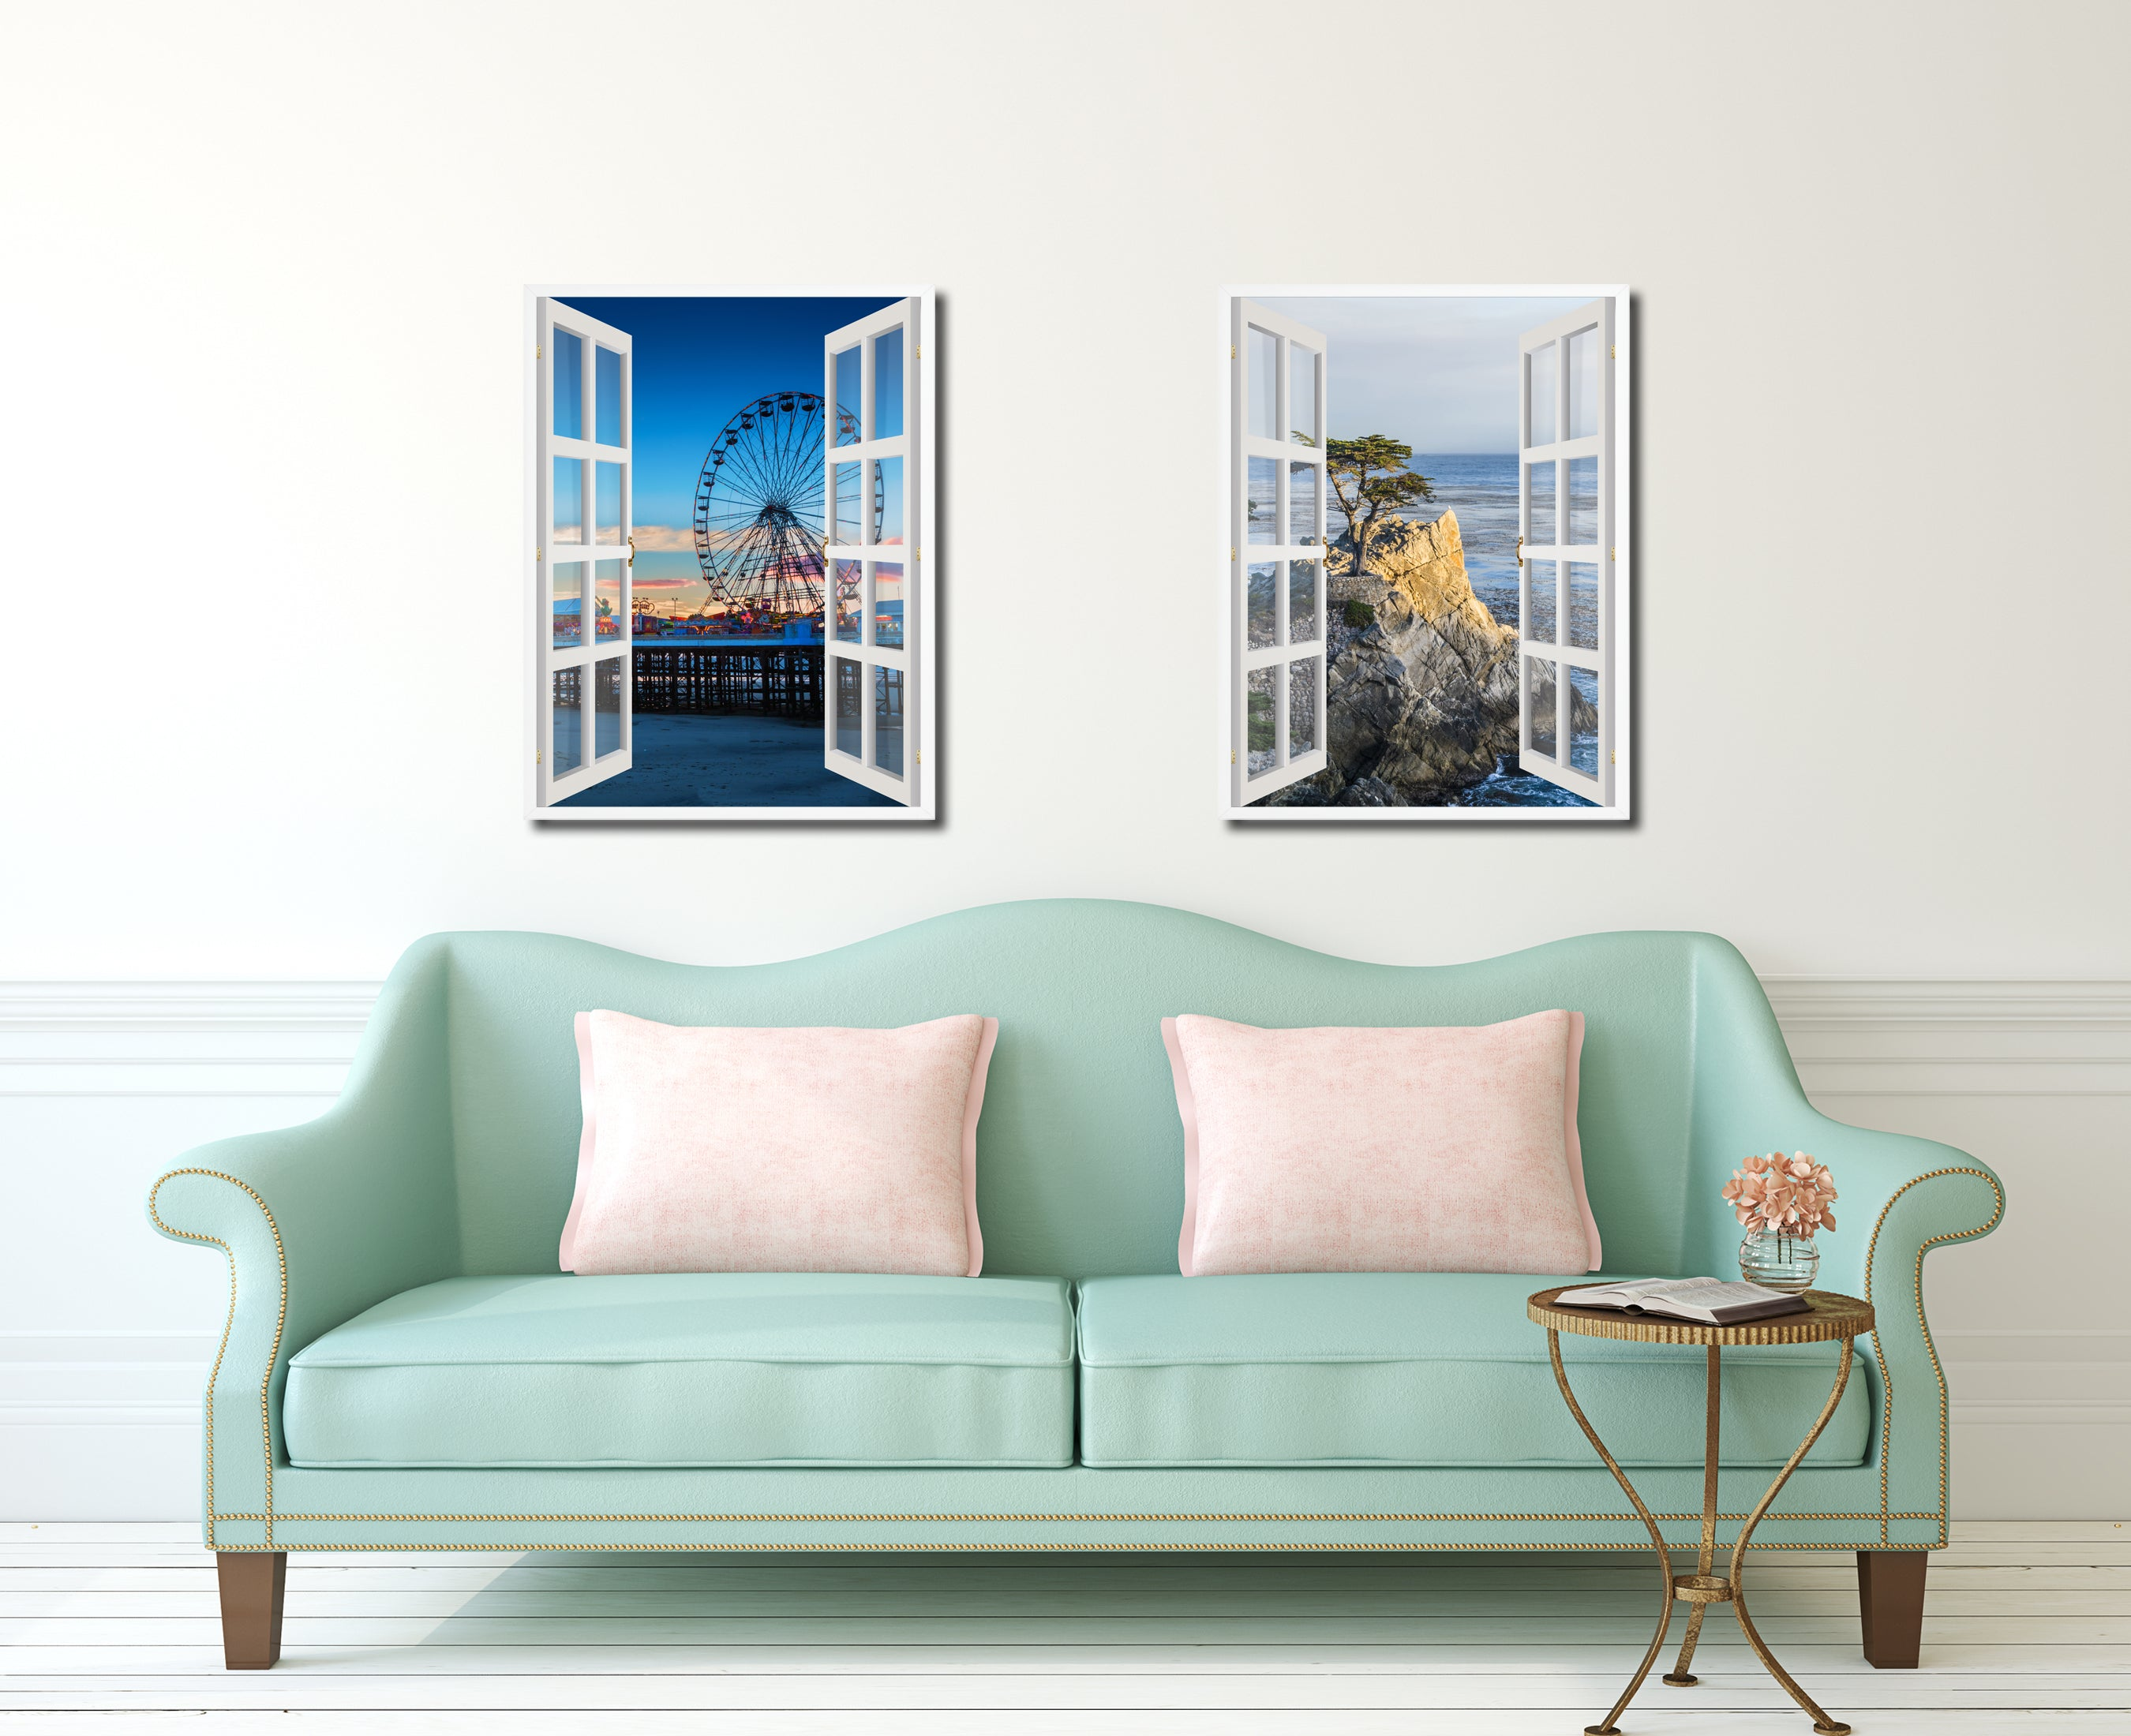 Sunset View Ferris Wheel Picture French Window Canvas Print with Frame Gifts Home Decor Wall Art Collection